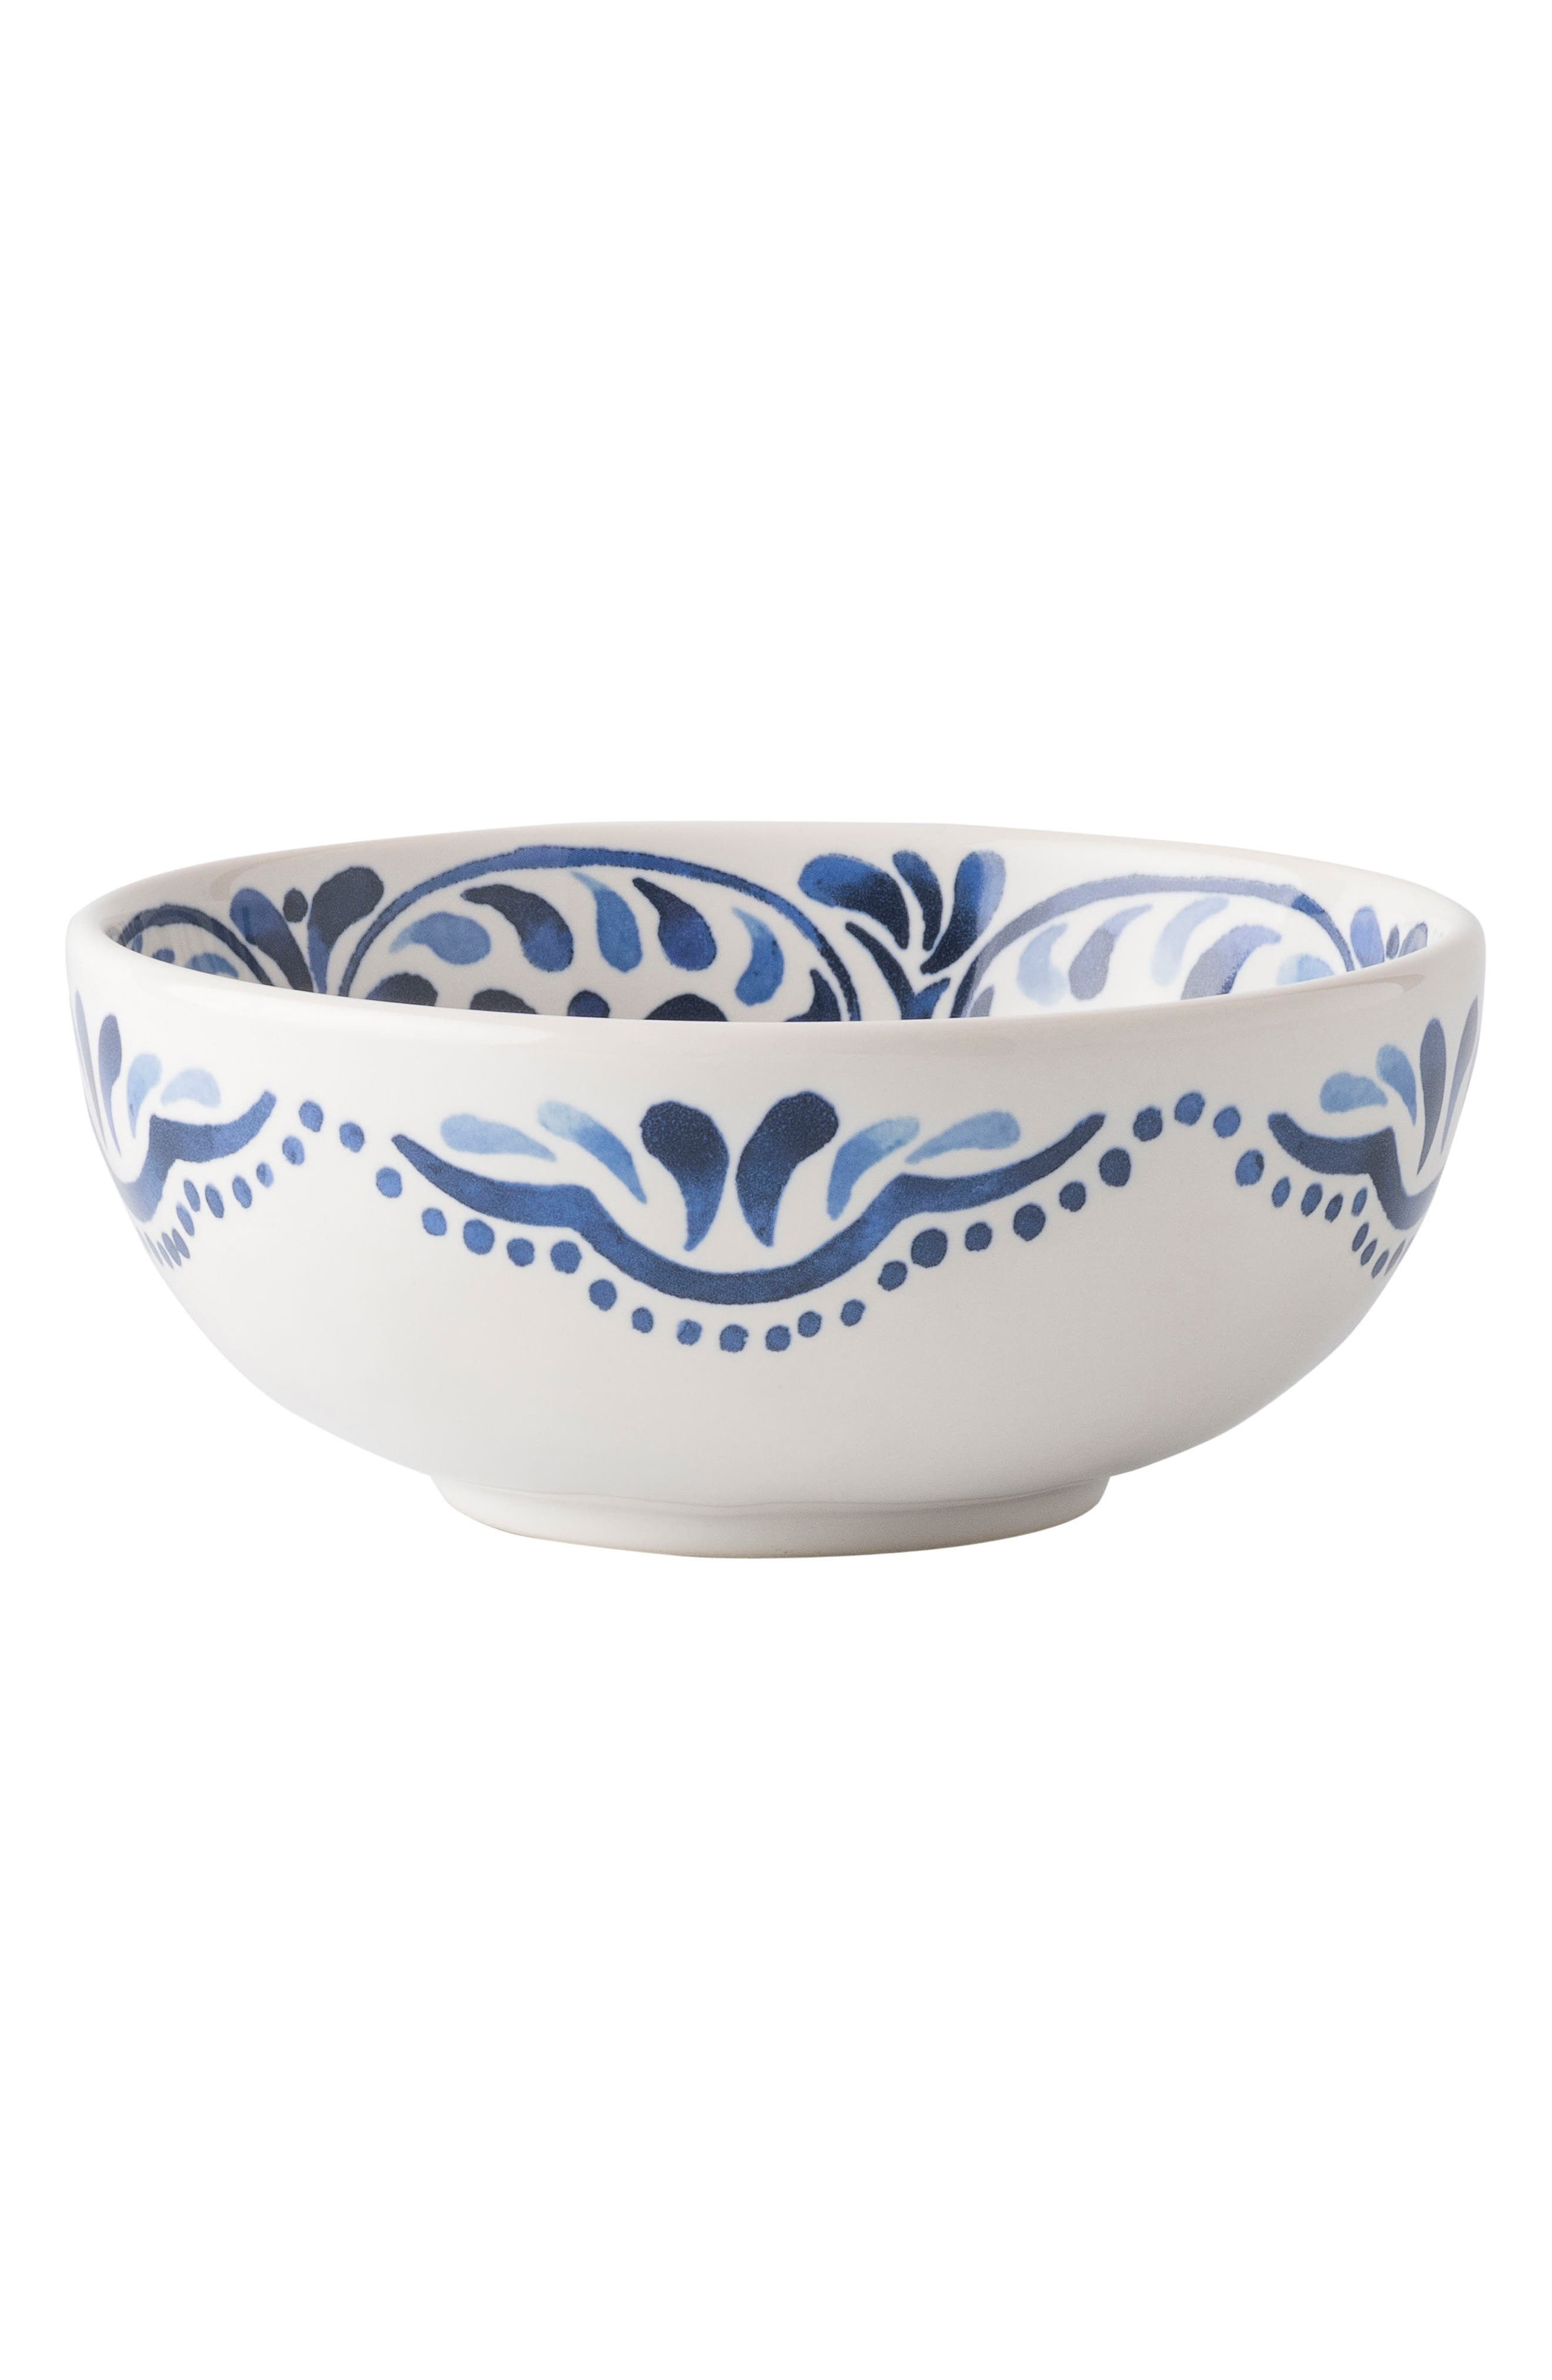 Juliska Wanderlust Collection - Iberian Journey Ceramic Cereal Bowl